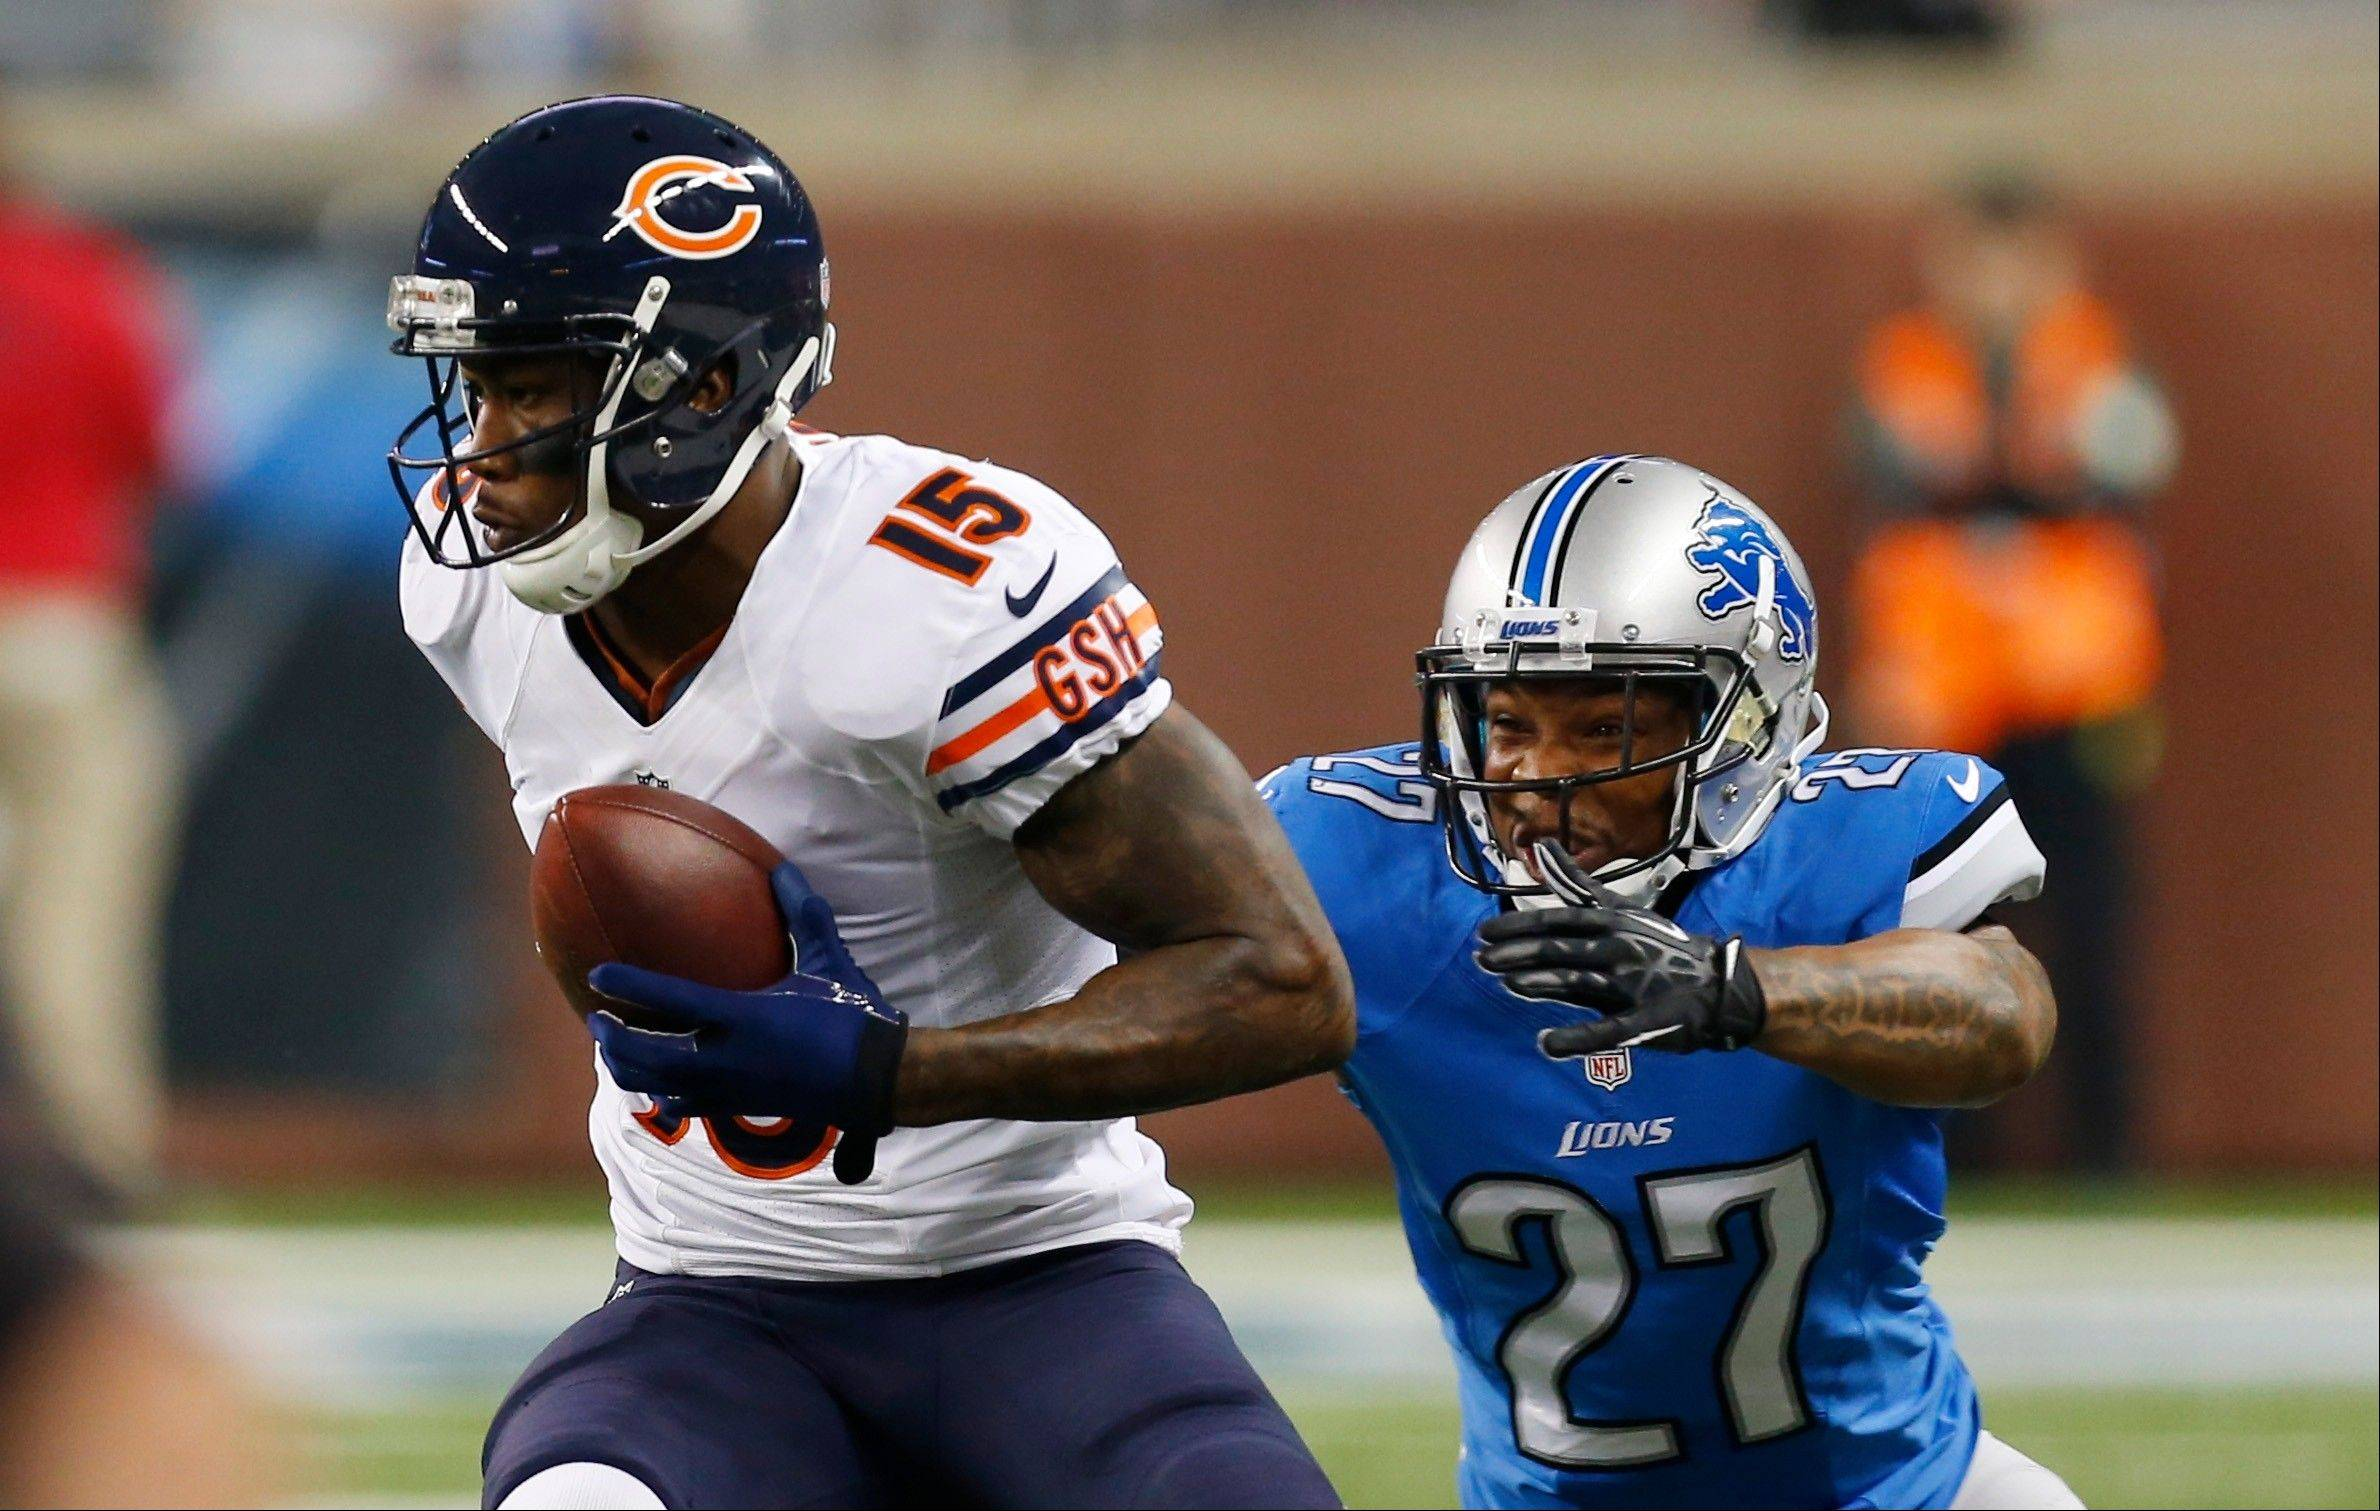 No matter how many times he is targeted this season, Brandon Marshall will remain the Bears' go-to wide receiver.